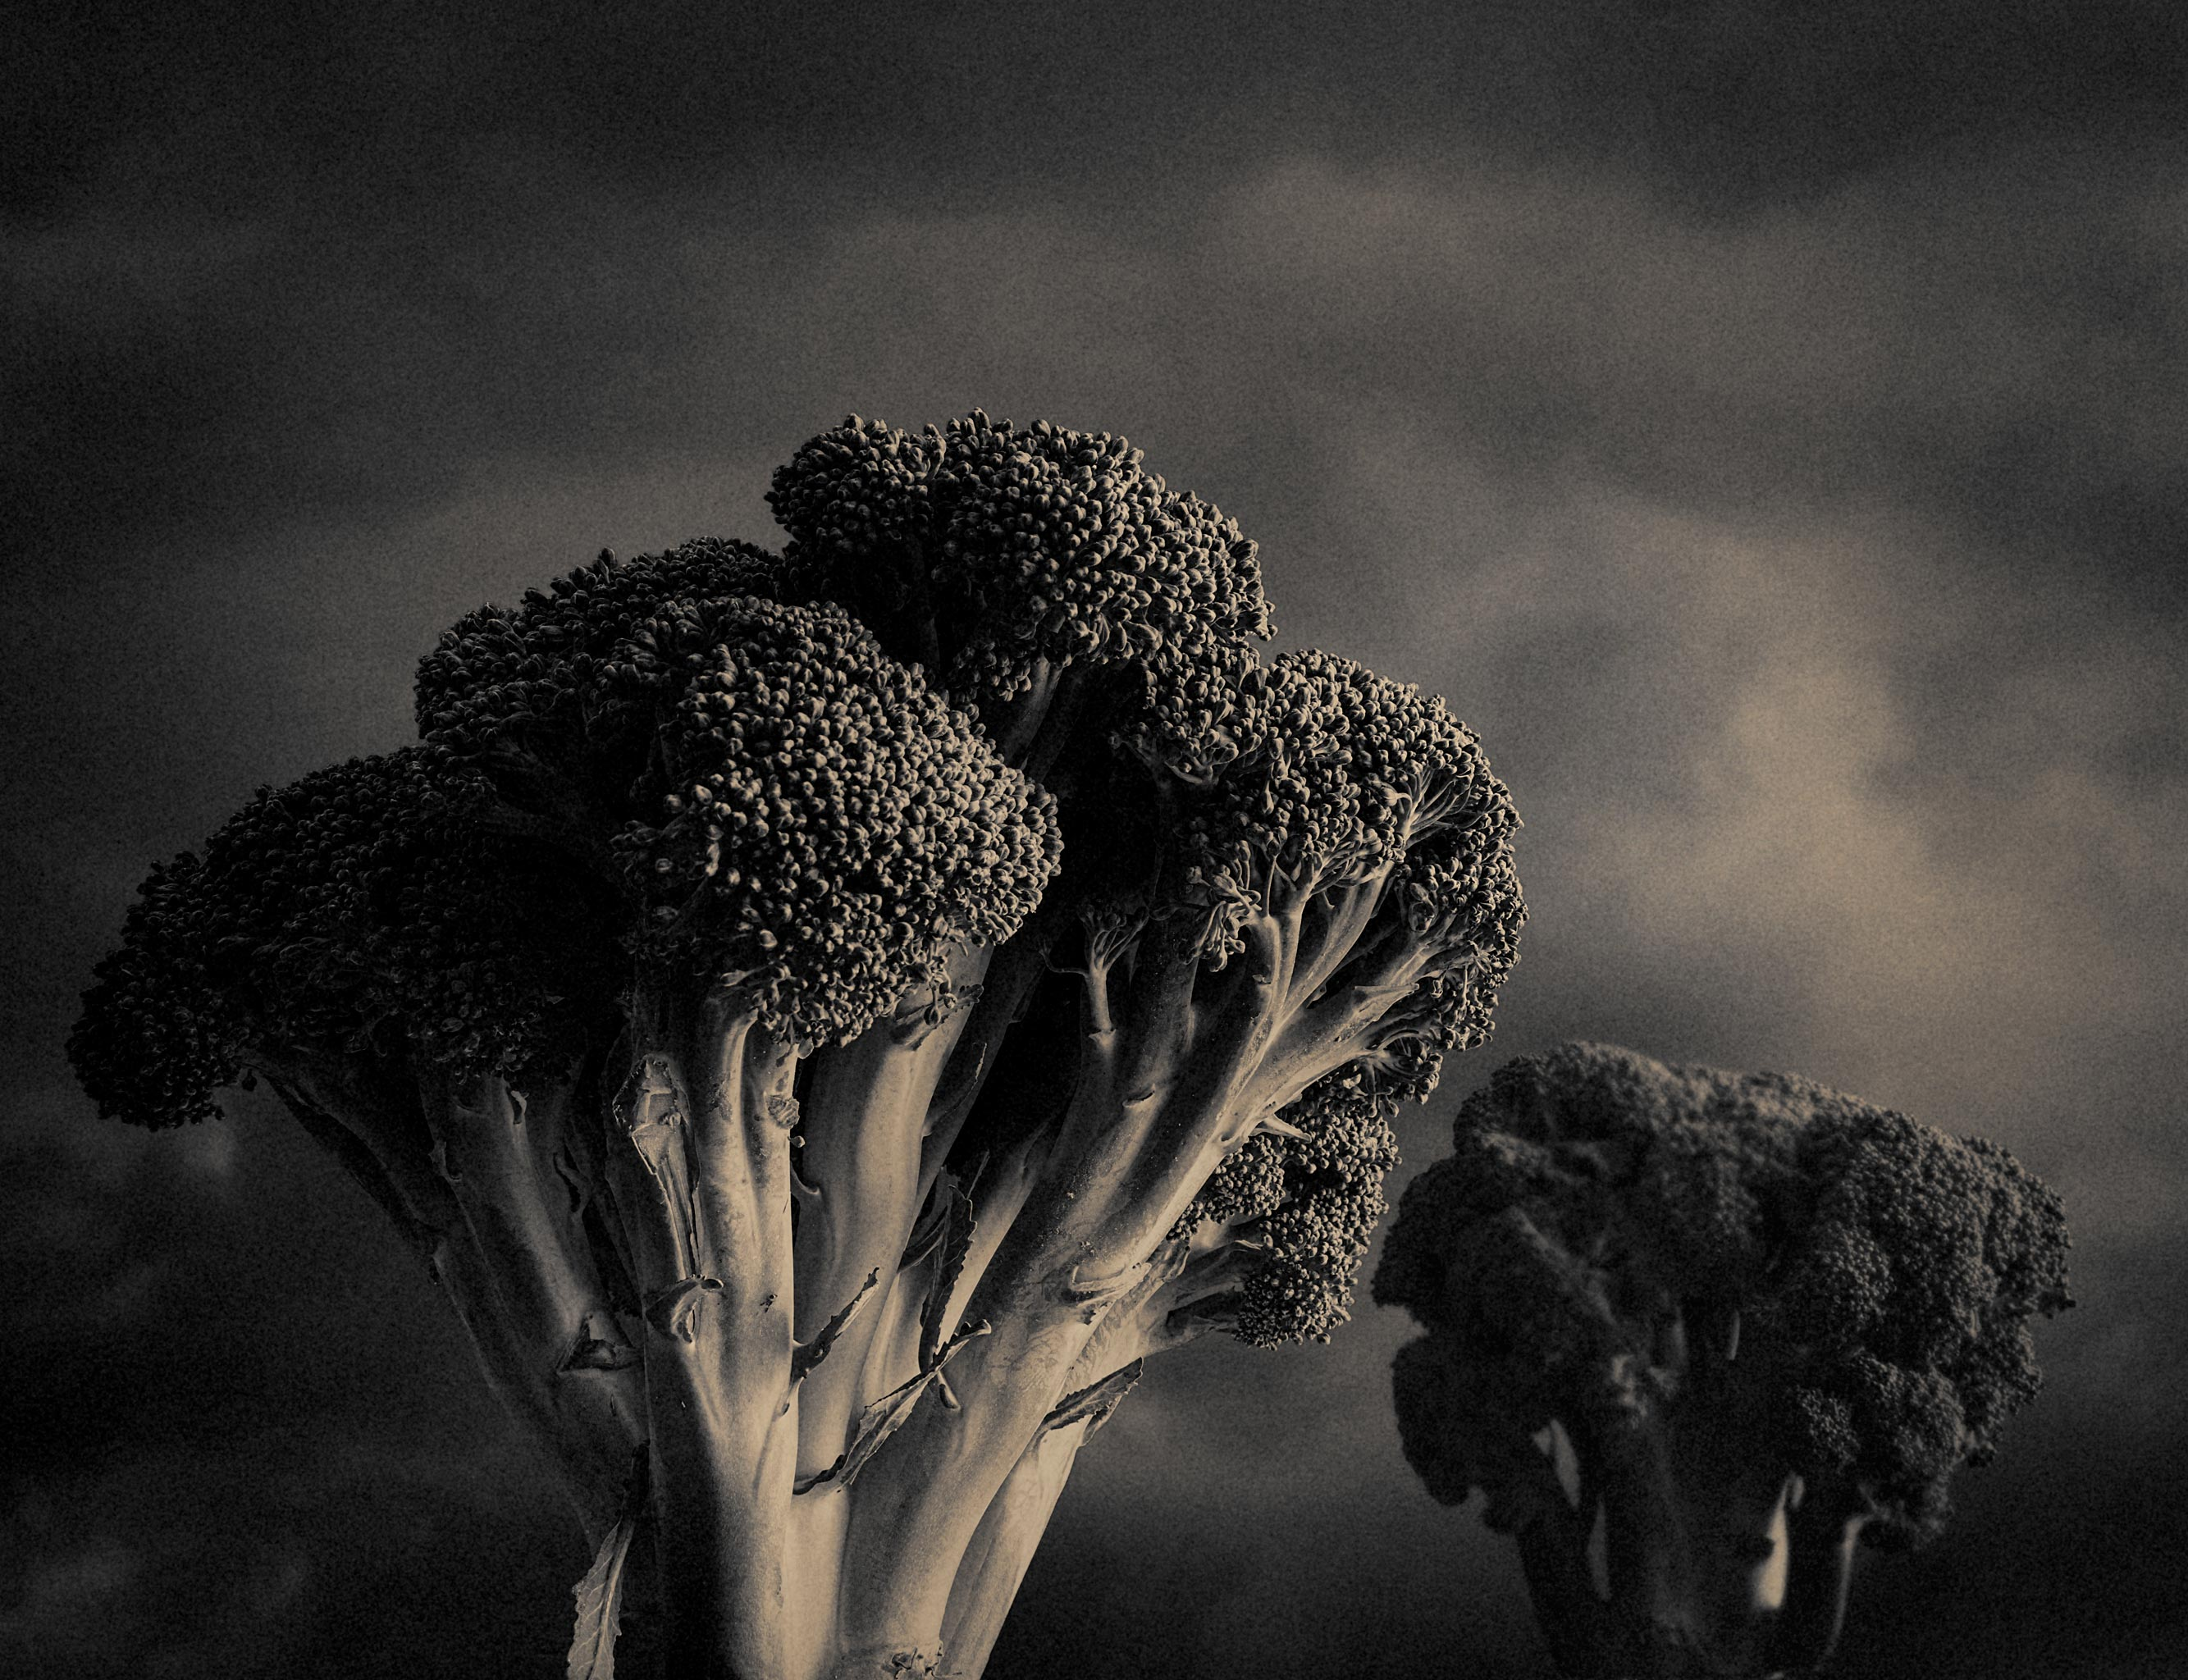 broccoli-trees_8491-w